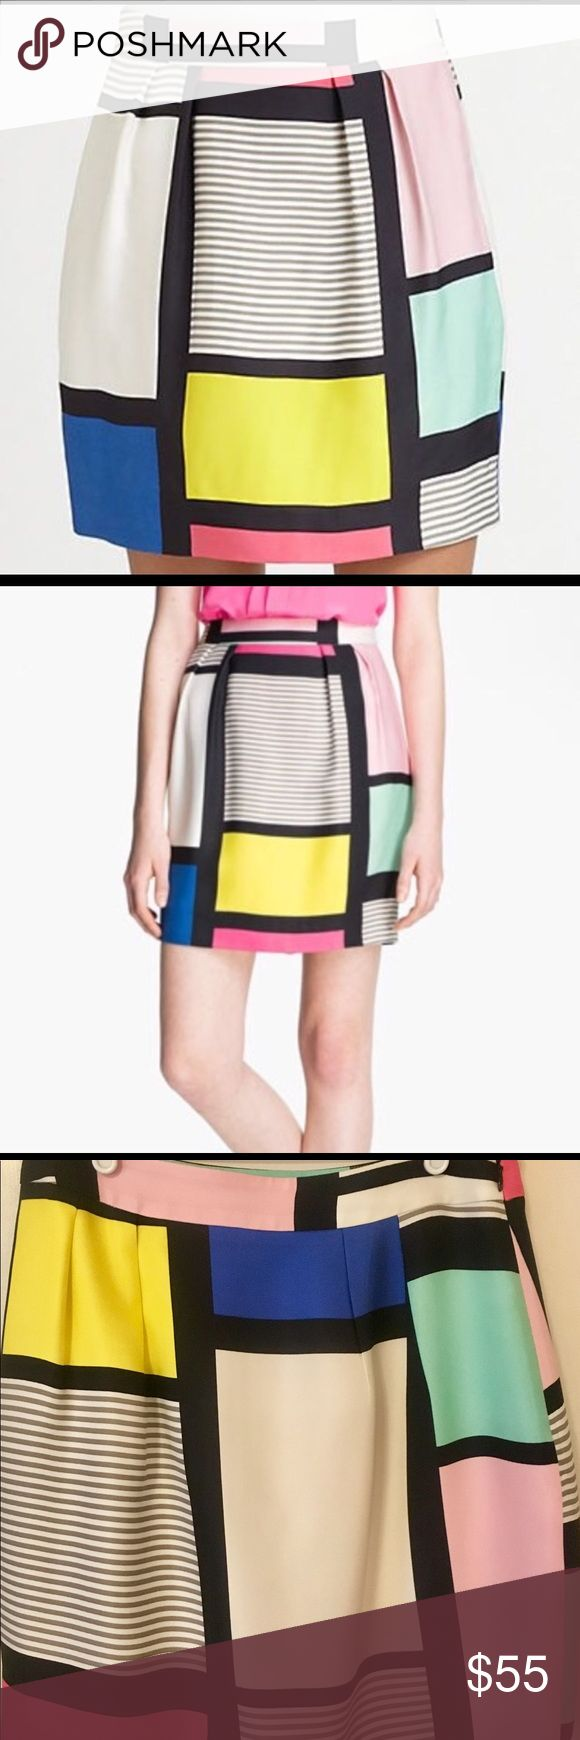 """Kate Spade Colorful Skirt Kate Spade New York, """"Skirt the Rules."""" This beautiful skirt is perfect for the office or a night out! It is fun and colorful with pinks, blues, yellows and greens. 100% polyester. Dry Clean Only. Kate Spade Skirts"""